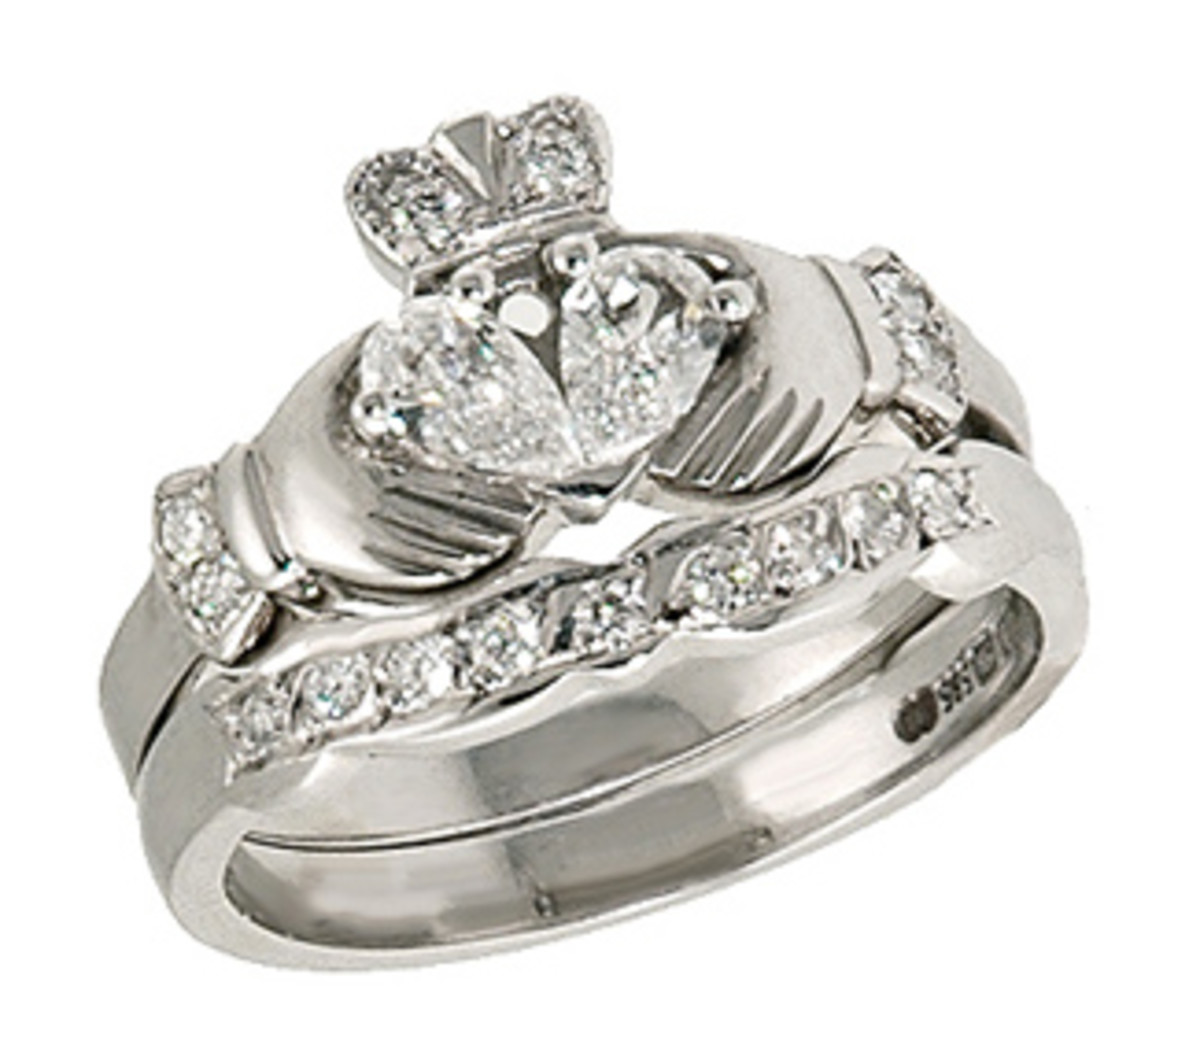 The Claddagh Wedding Ring Style